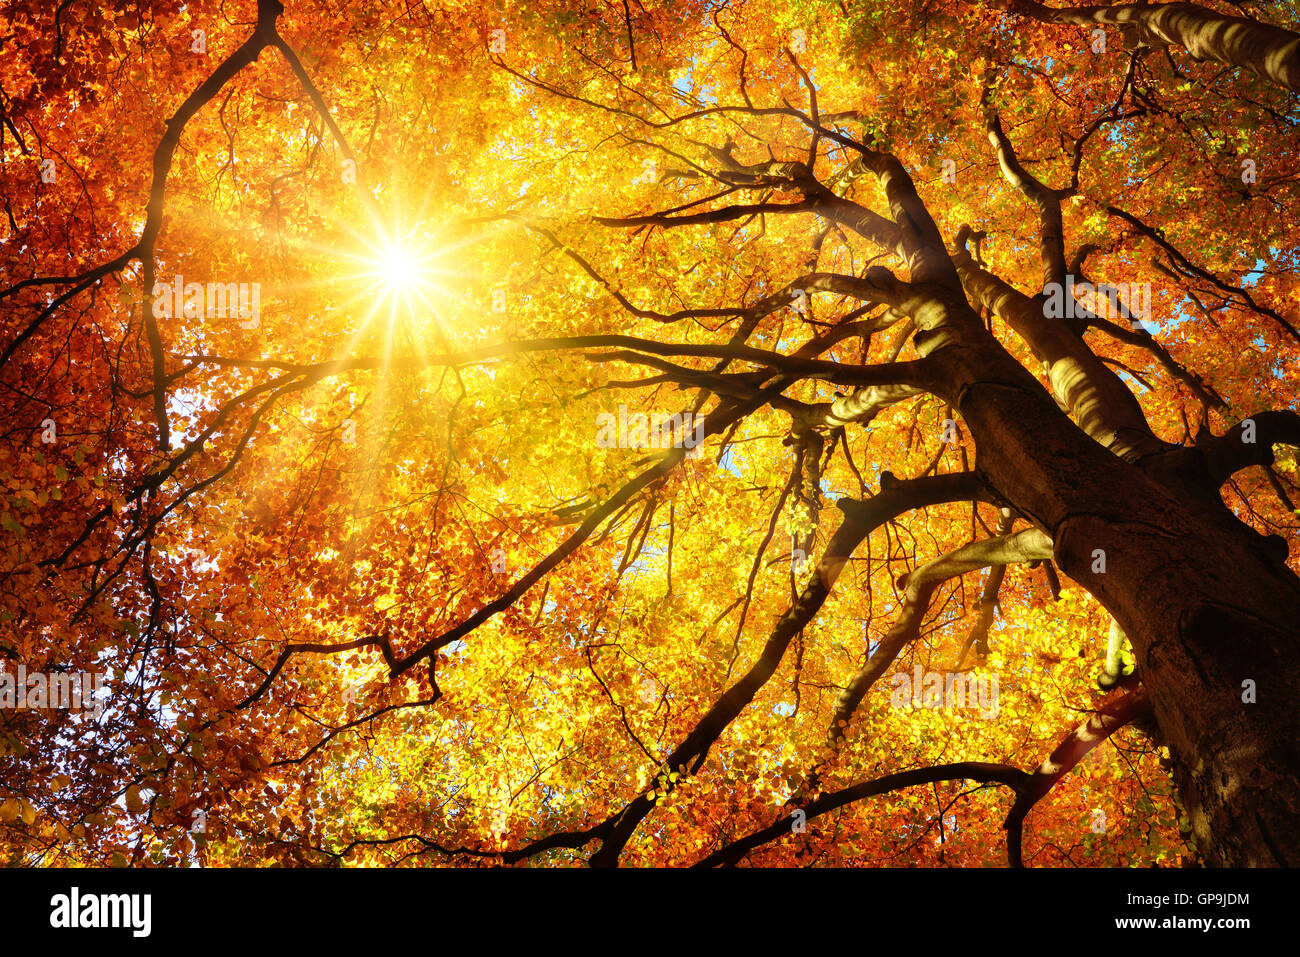 Autumn Fall Live Wallpaper Autumn Sun Shining Warmly Through The Leaves Of A Majestic